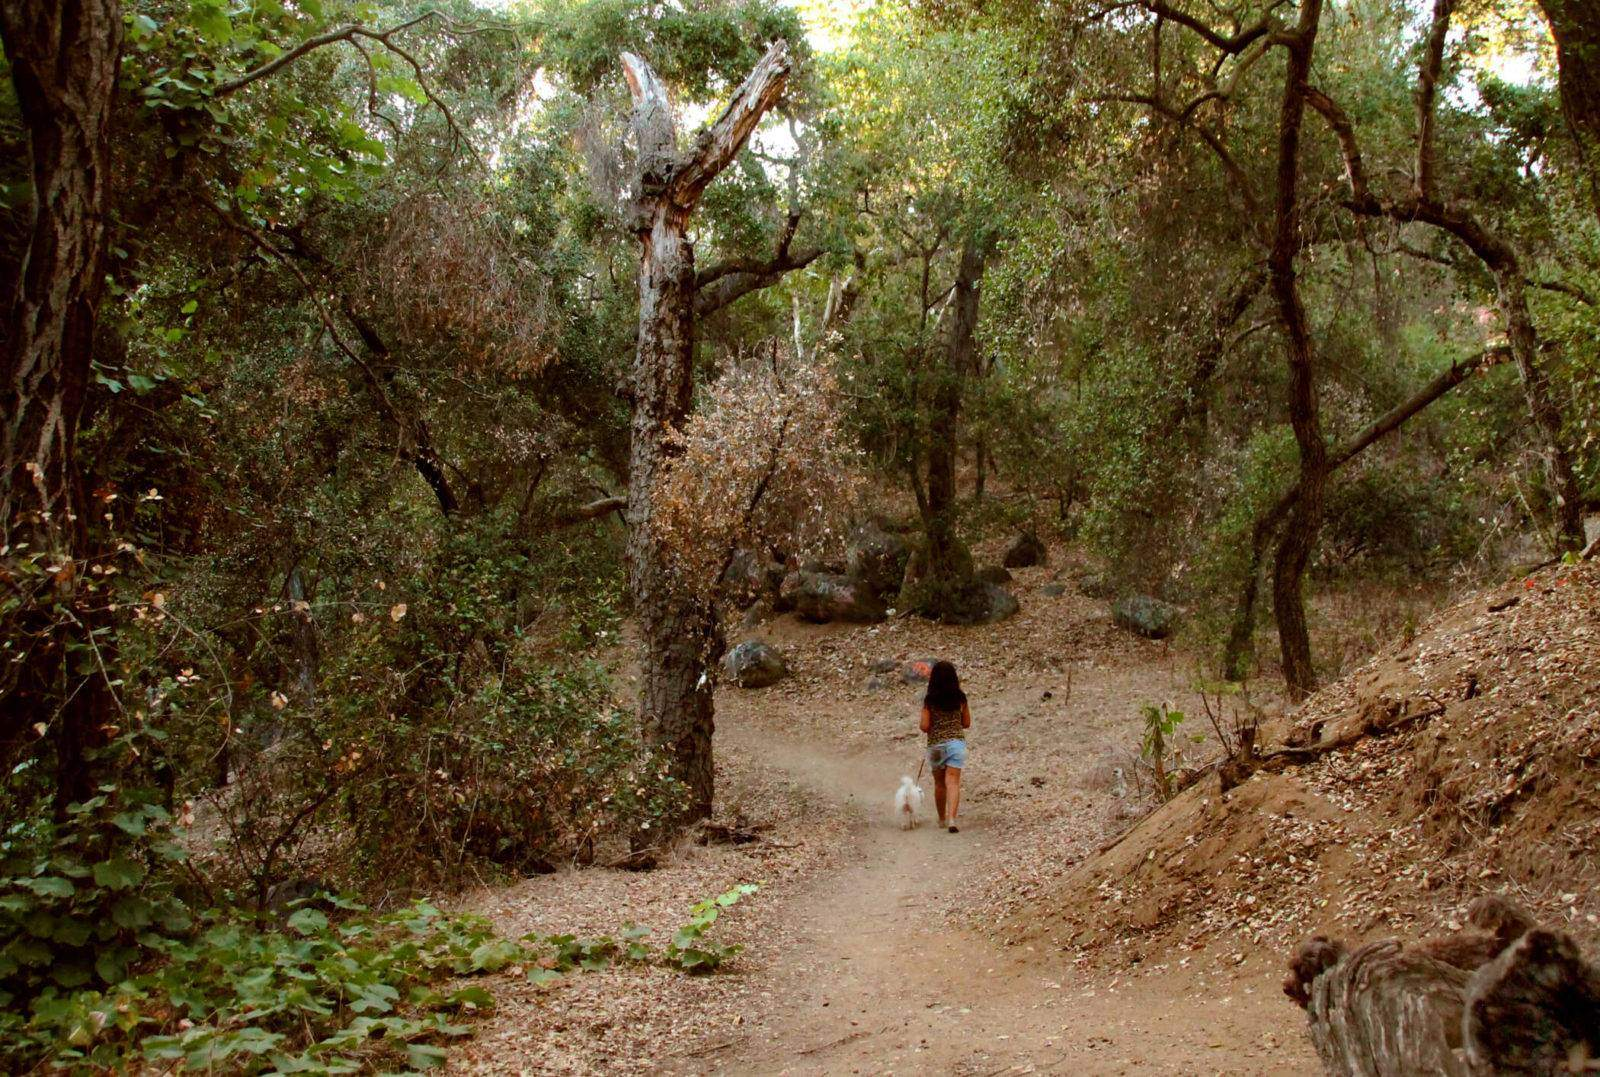 Hike one of Escondido's beautiful and historical forested trails in Kit Carson Park